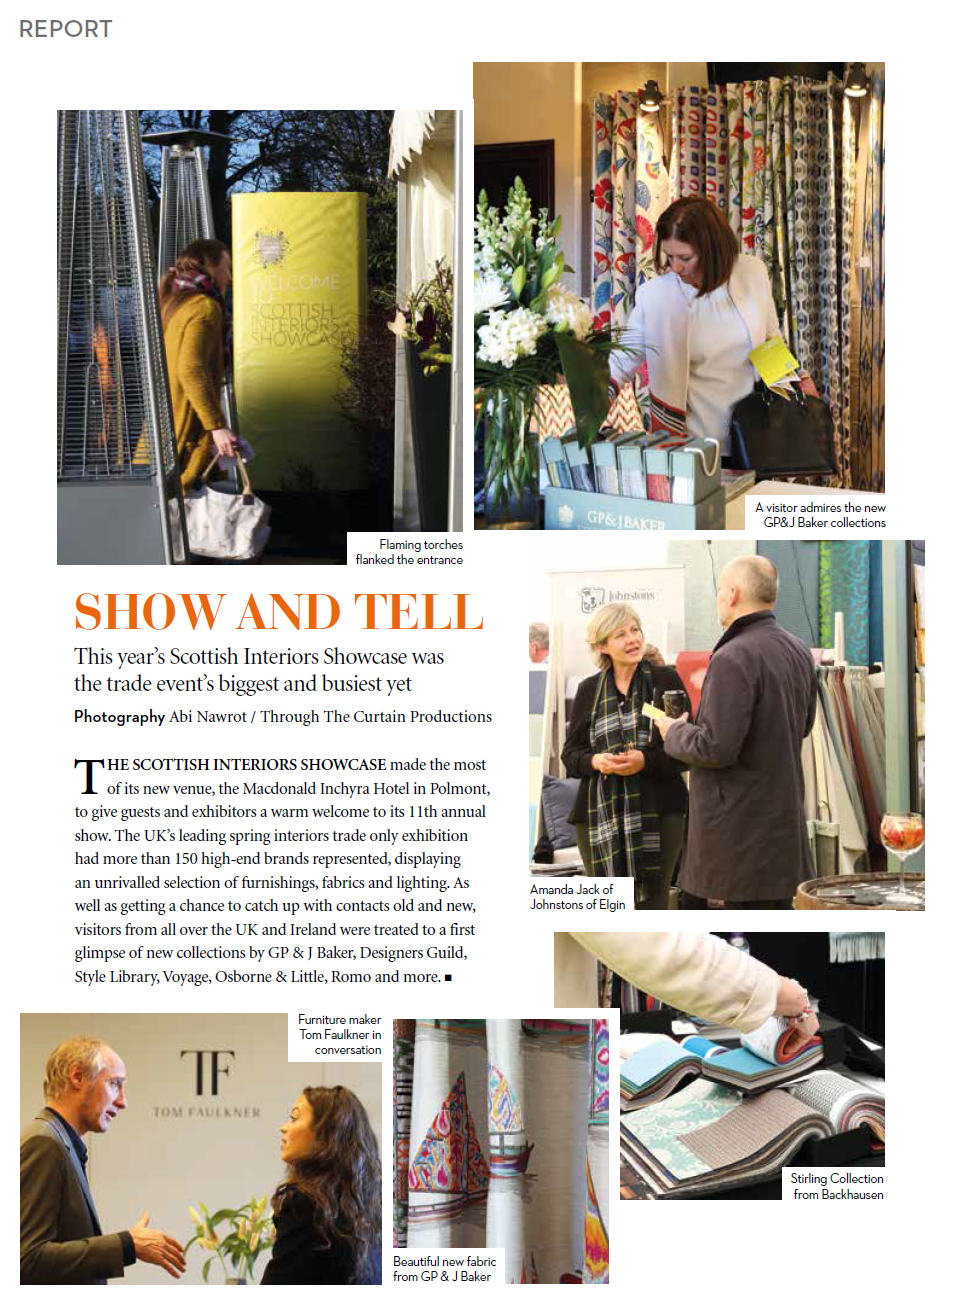 Scottish Interiors Showcase article in Home & Interiors Scotland